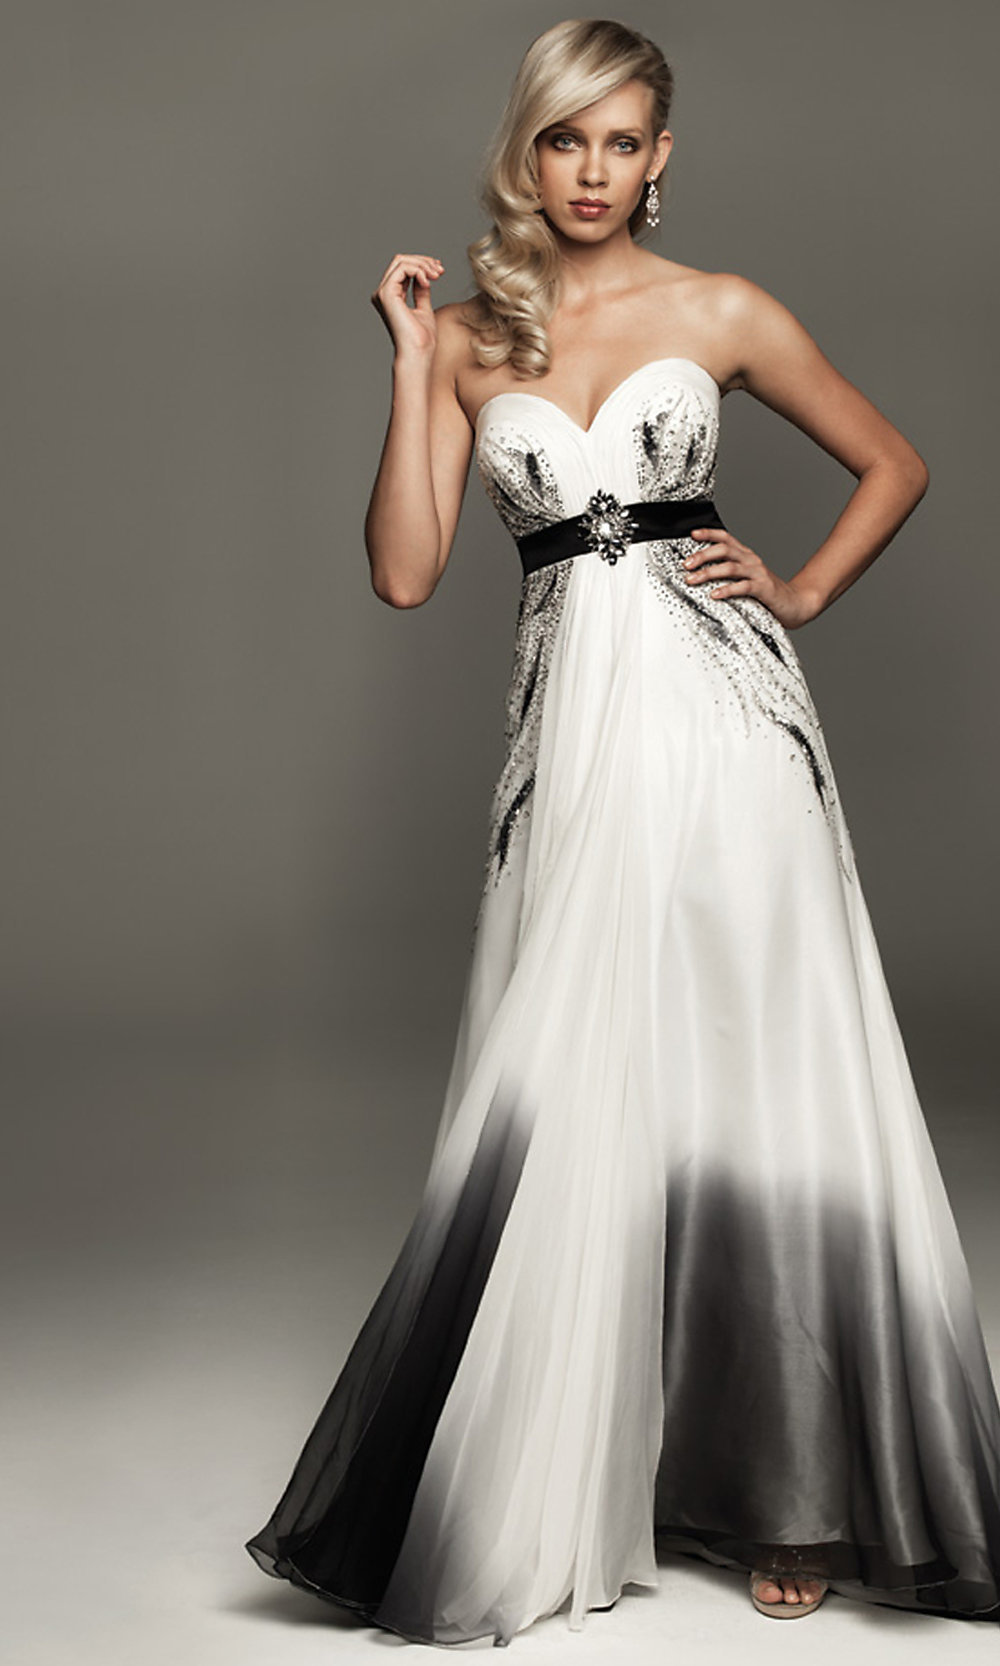 Long Strapless Black And White Dress Promgirl